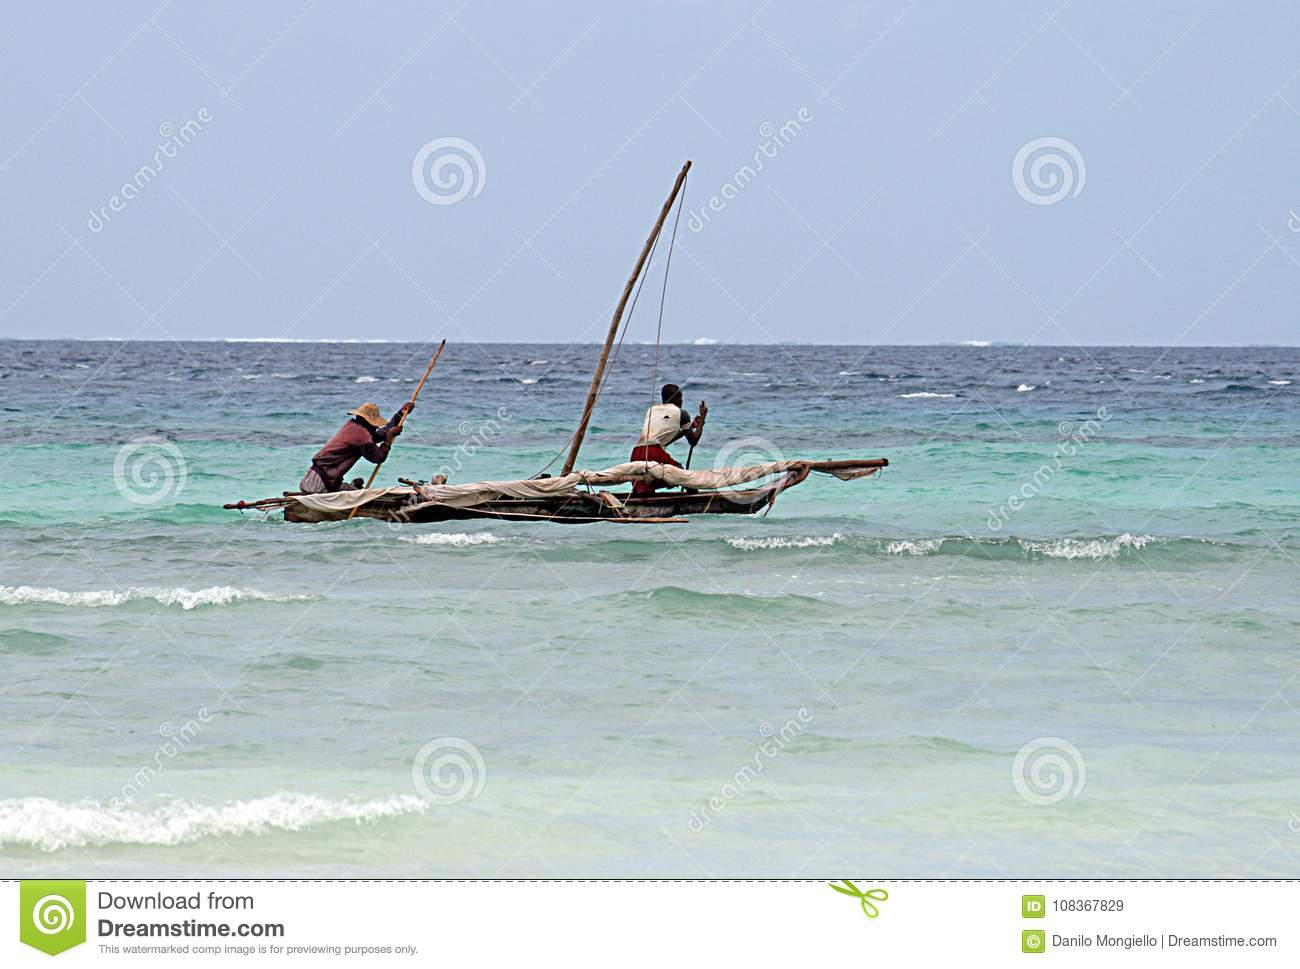 43 Rawing Boat Photos - Free & Royalty-Free Stock Photos from Dreamstime